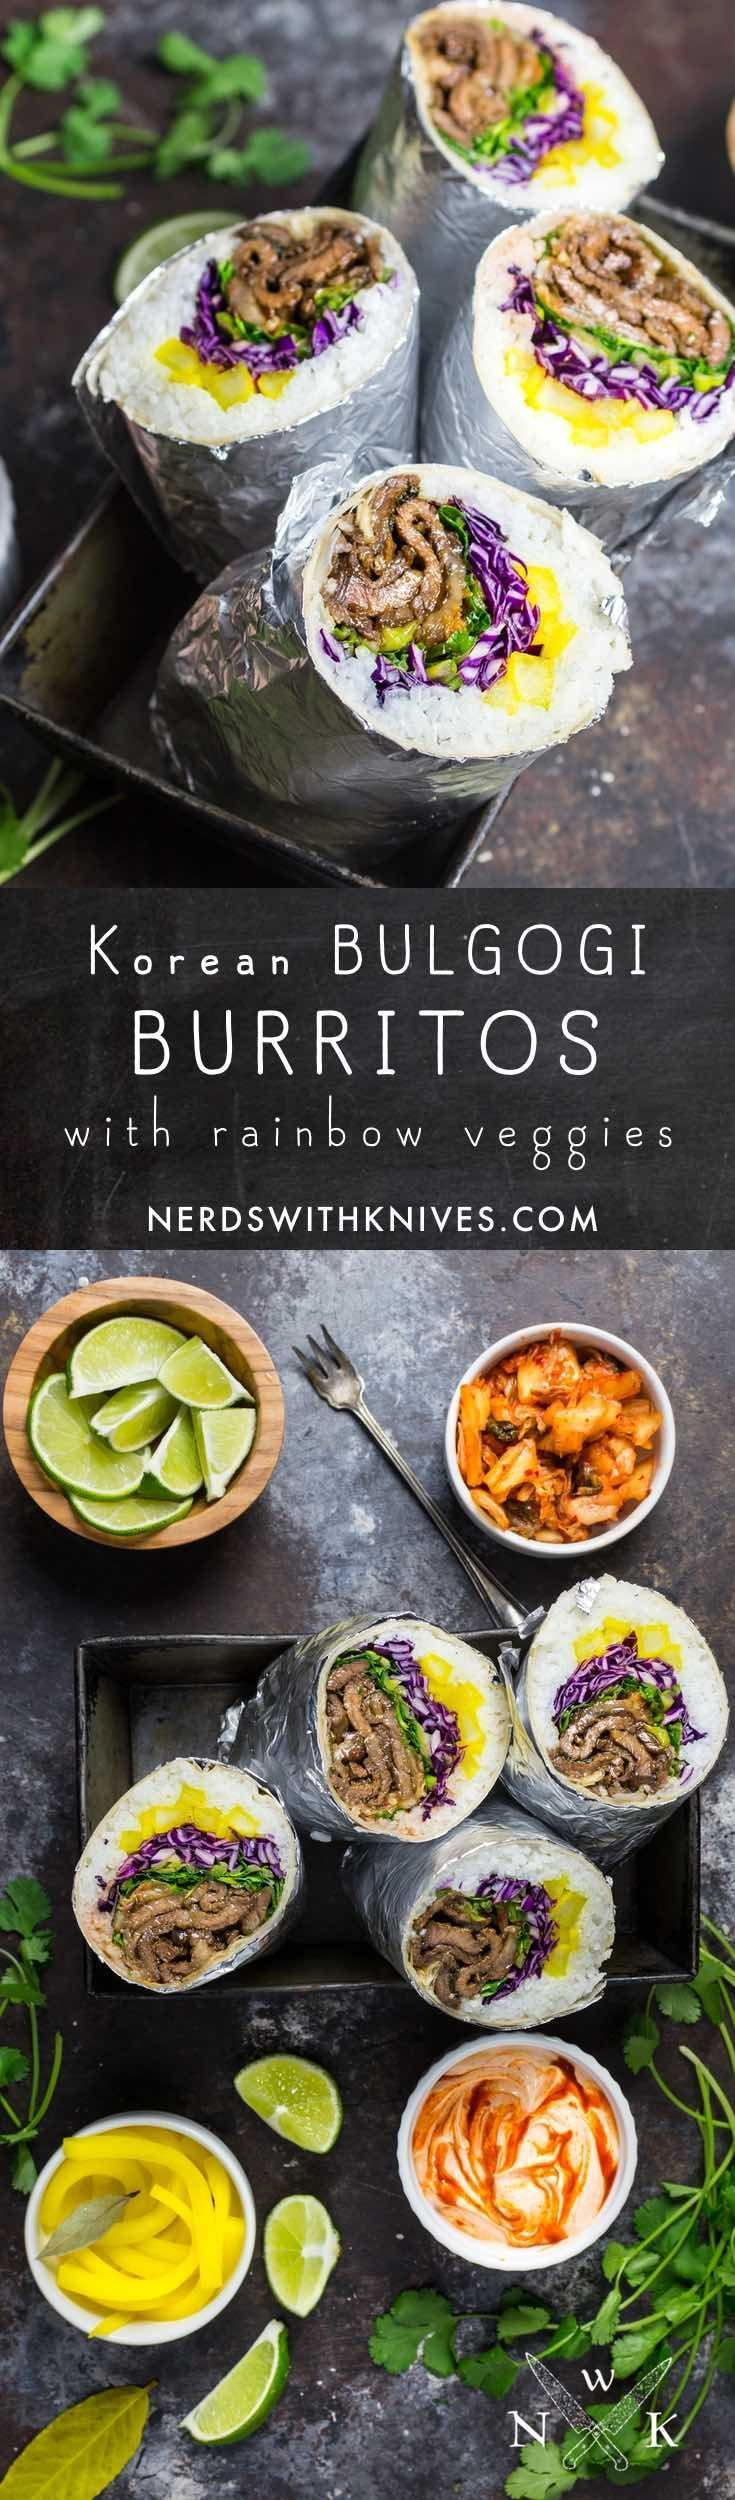 Korean bulgogi burritos – tender soy and sugar marinated beef, charred crisp and wrapped in a burrito with a rainbow of vegetables. A delight for the palate … and the palette.